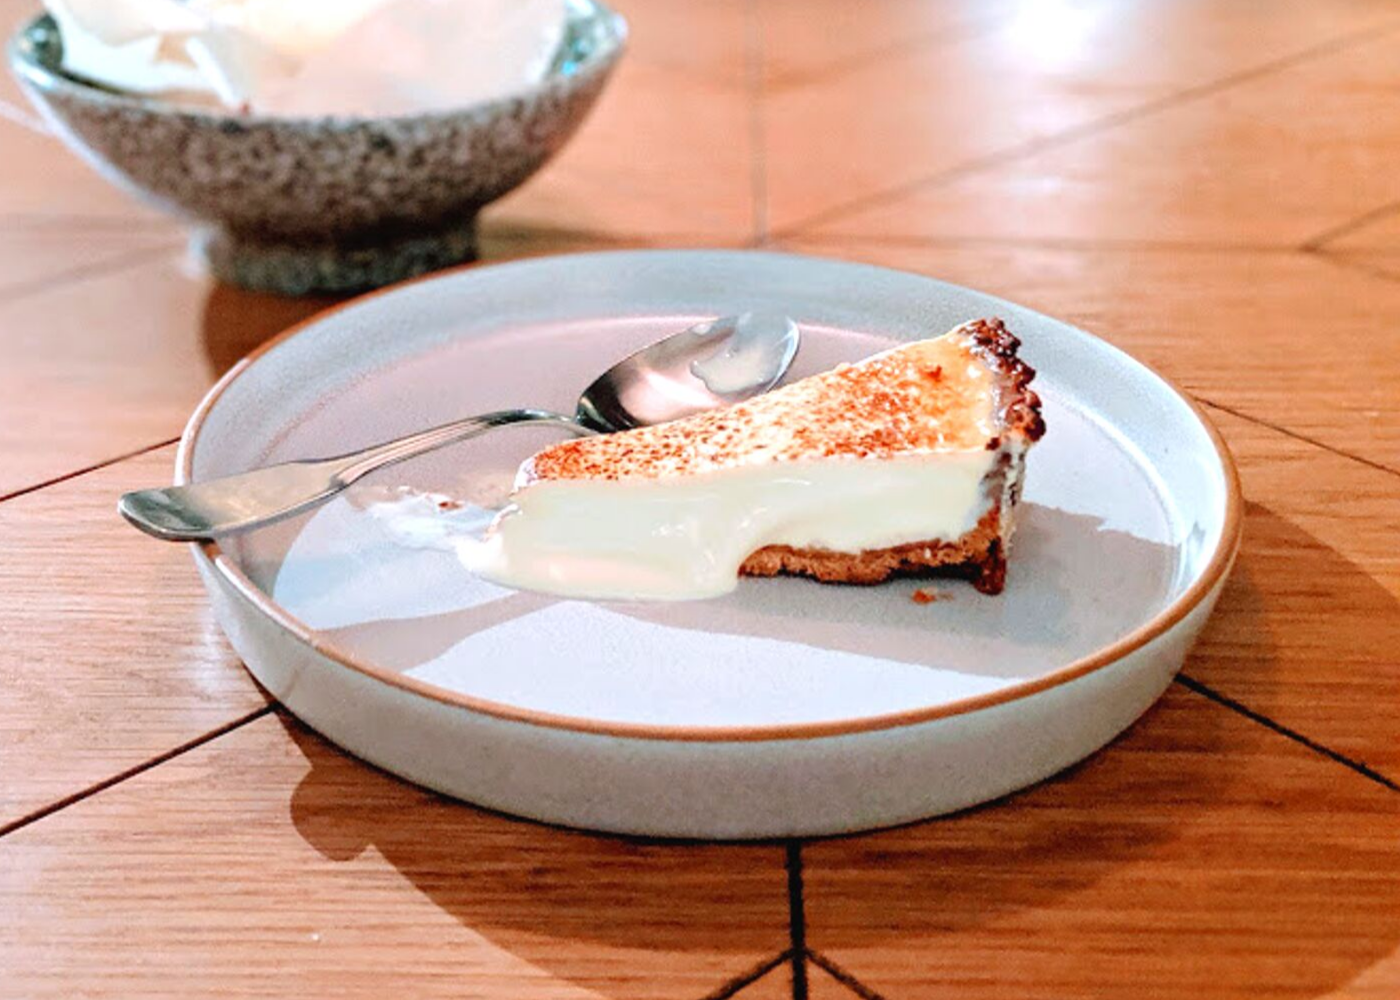 The fan favourite cheesecake and the torrija creation at the back.